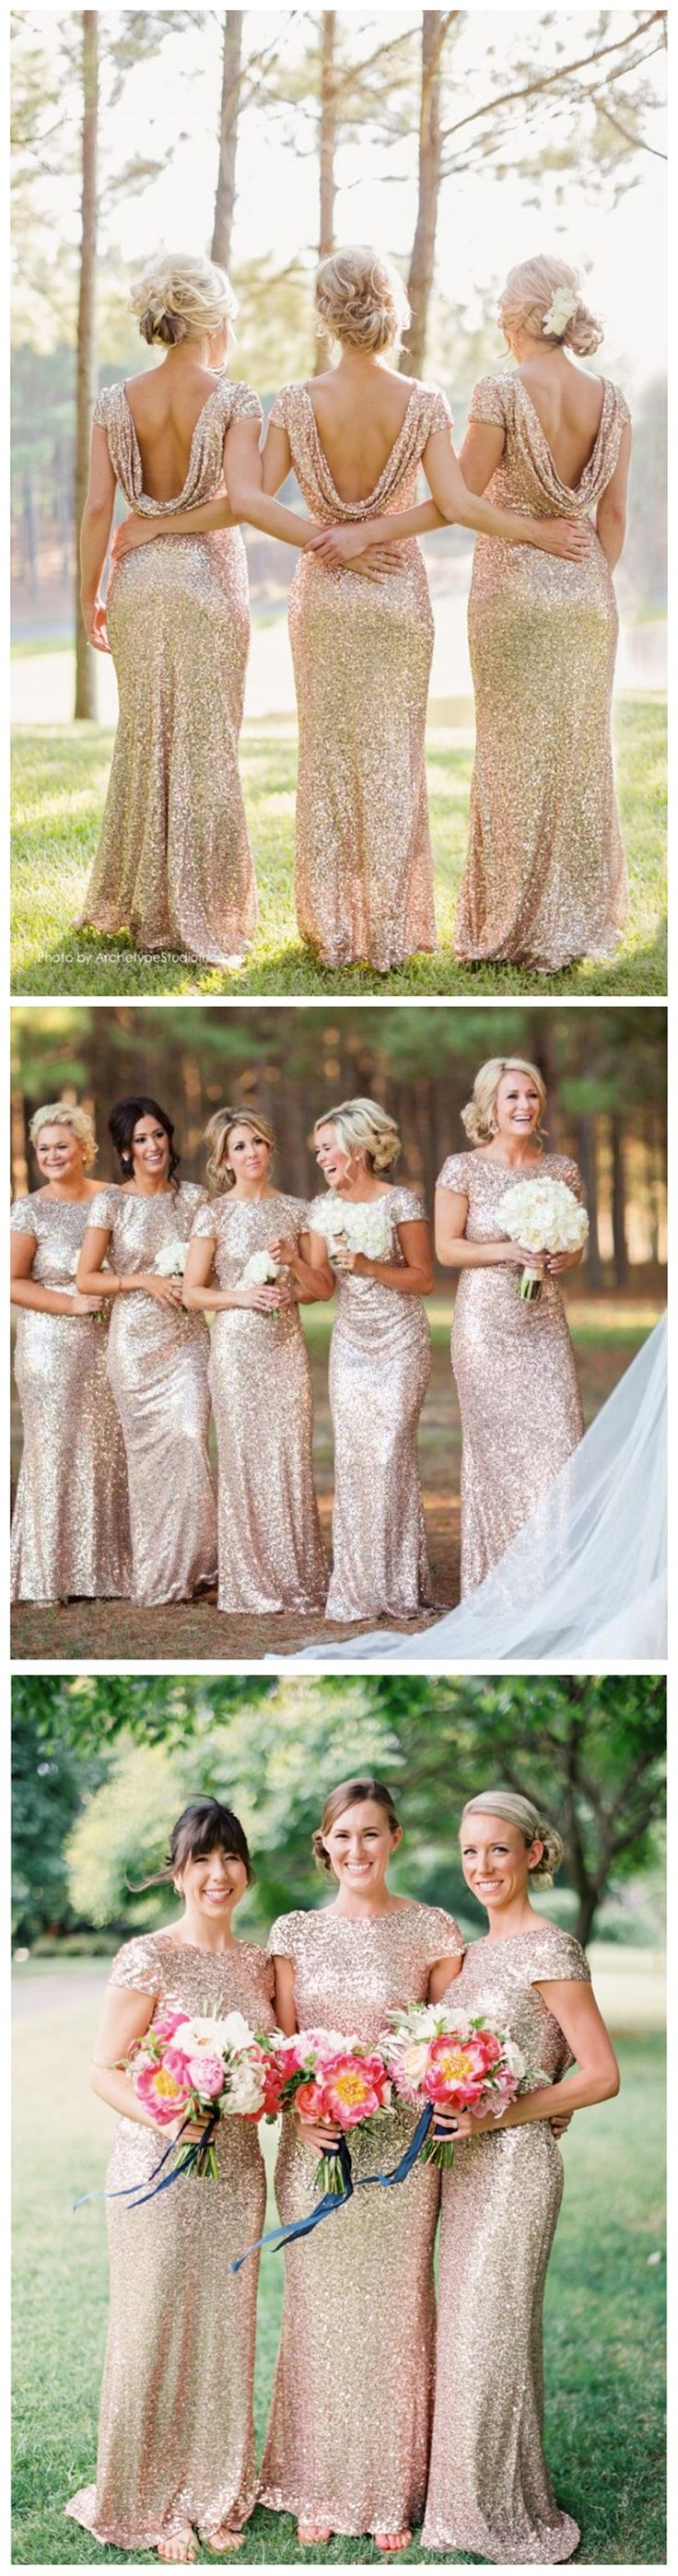 long bridesmaid dress, cap sleeve bridesmaid dress by yesdress from http://yesdress.storenvy.com/products/13798515-long-bridesmaid-dress-cap-sleeve-bridesmaid-dress-round-neck-bridesmaid-dr